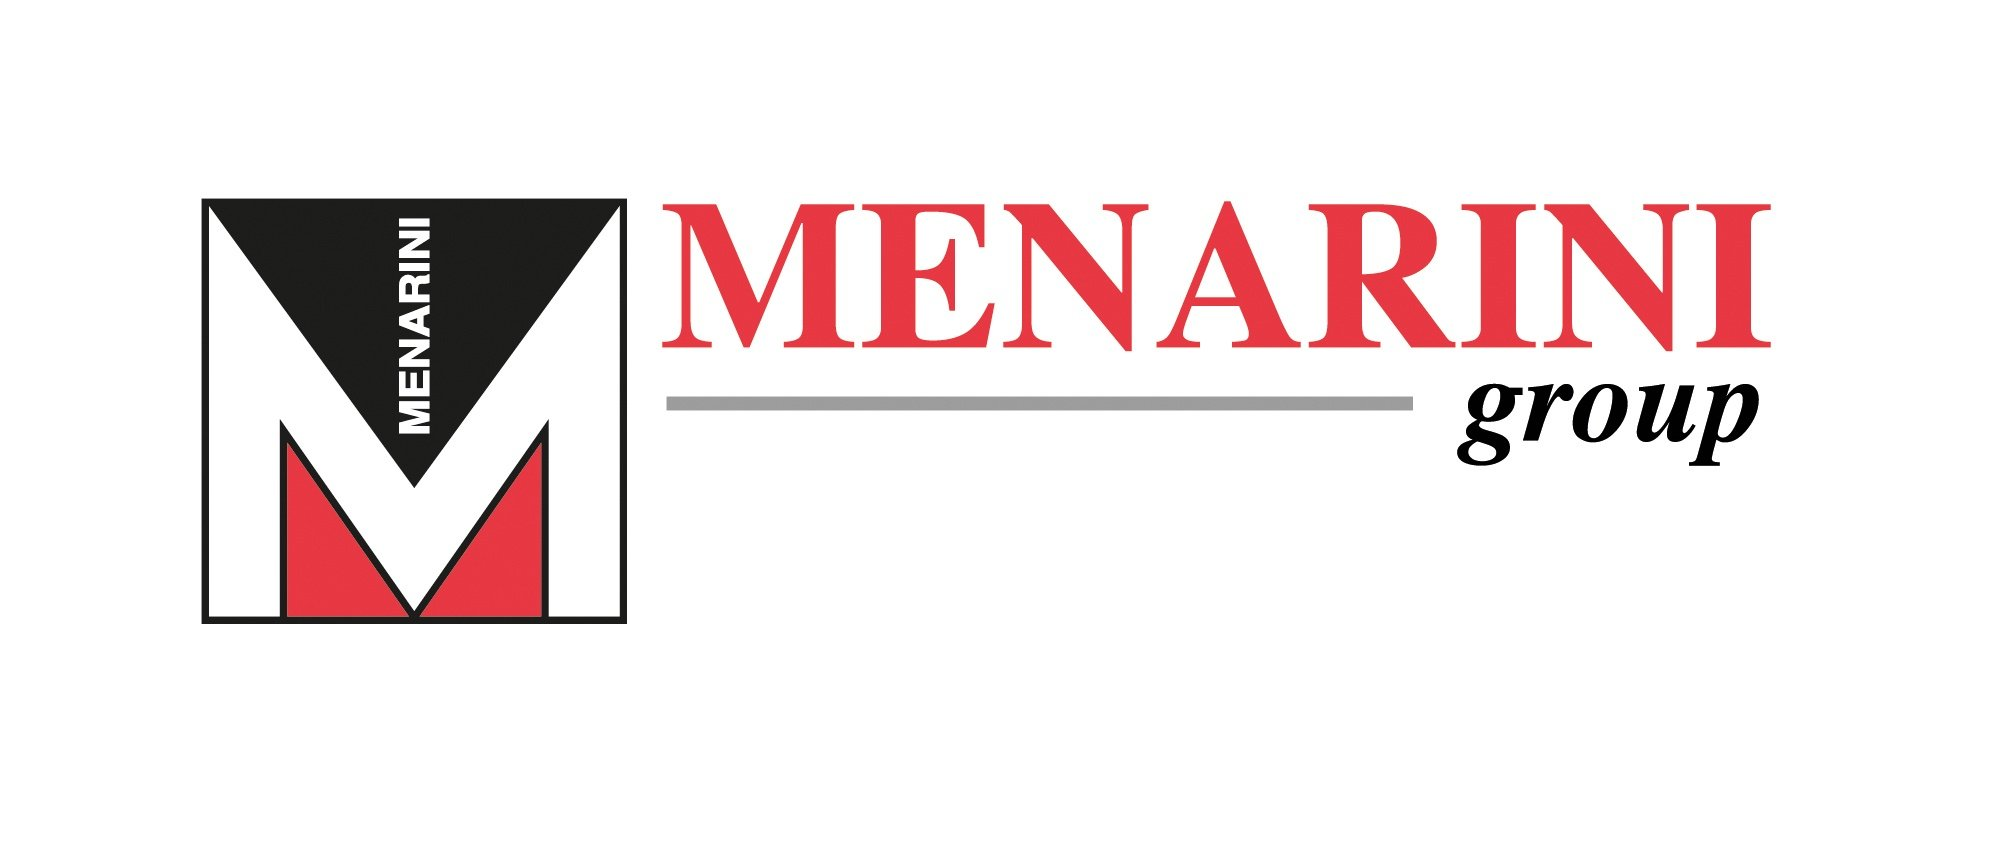 MENARINI GROUP Logo 2017-CROP.jpg